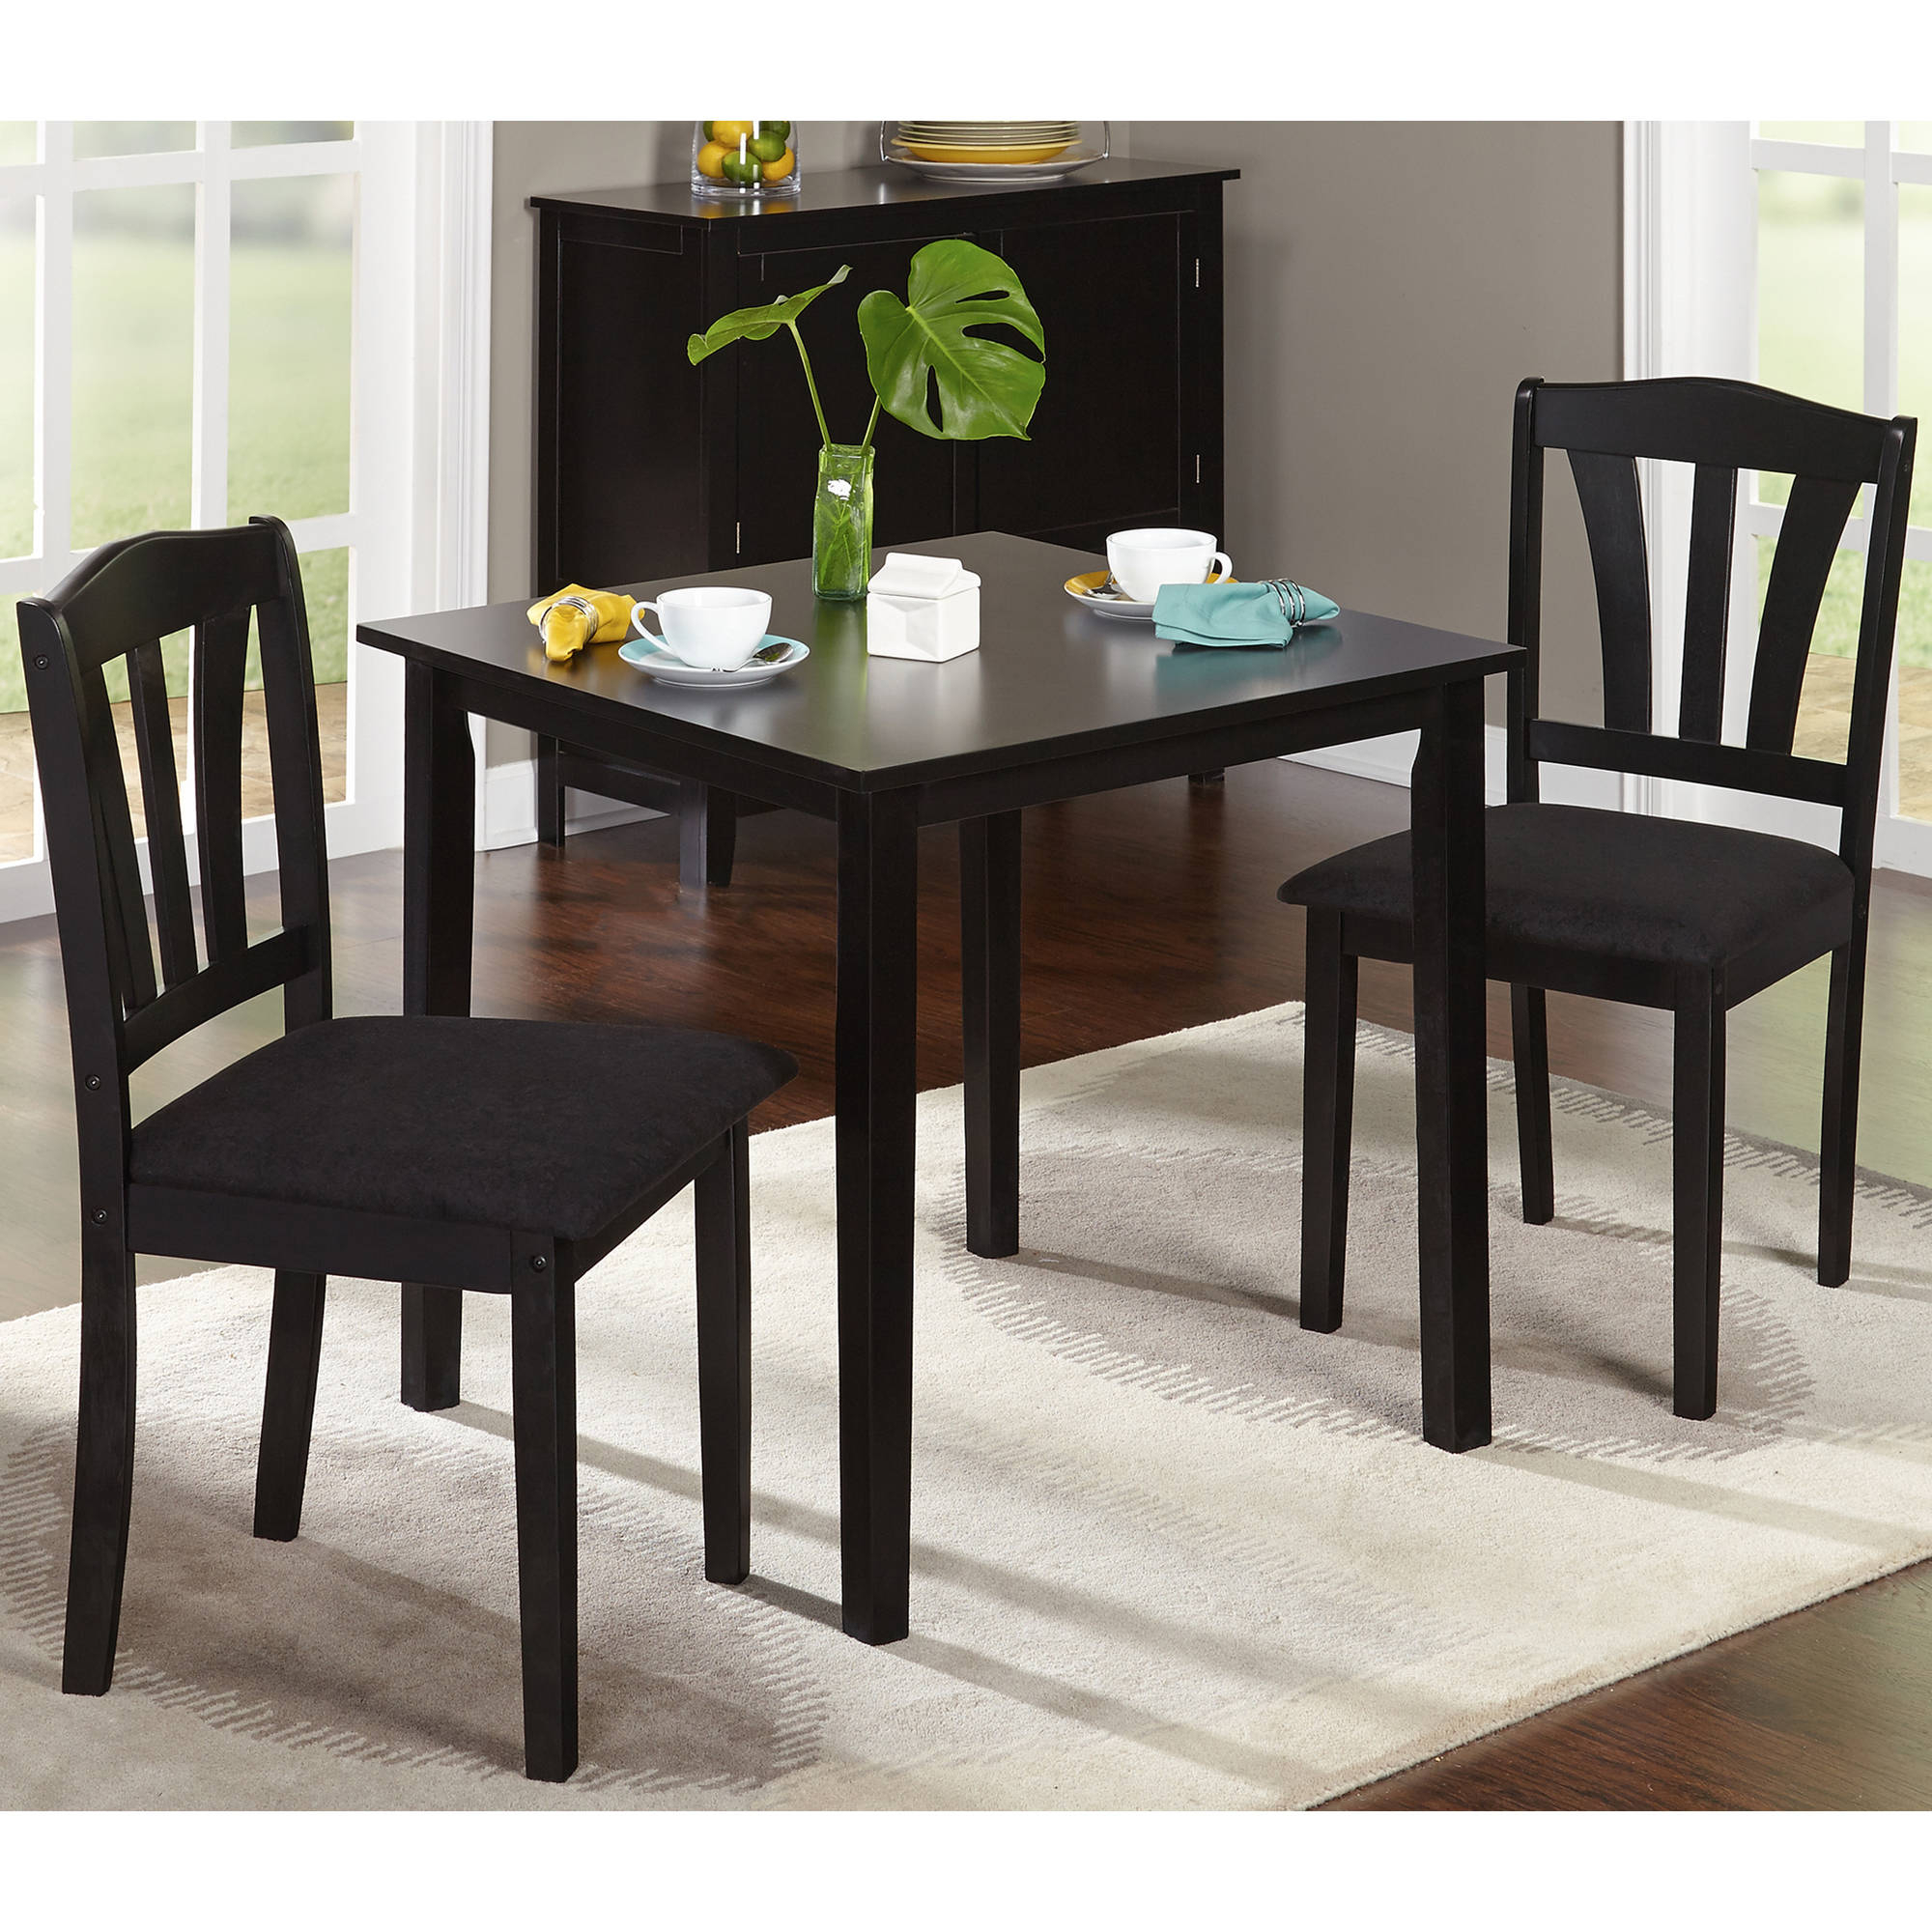 3 Piece Dining Sets In Most Popular Metropolitan 3 Piece Dining Set, Multiple Finishes (Gallery 1 of 20)